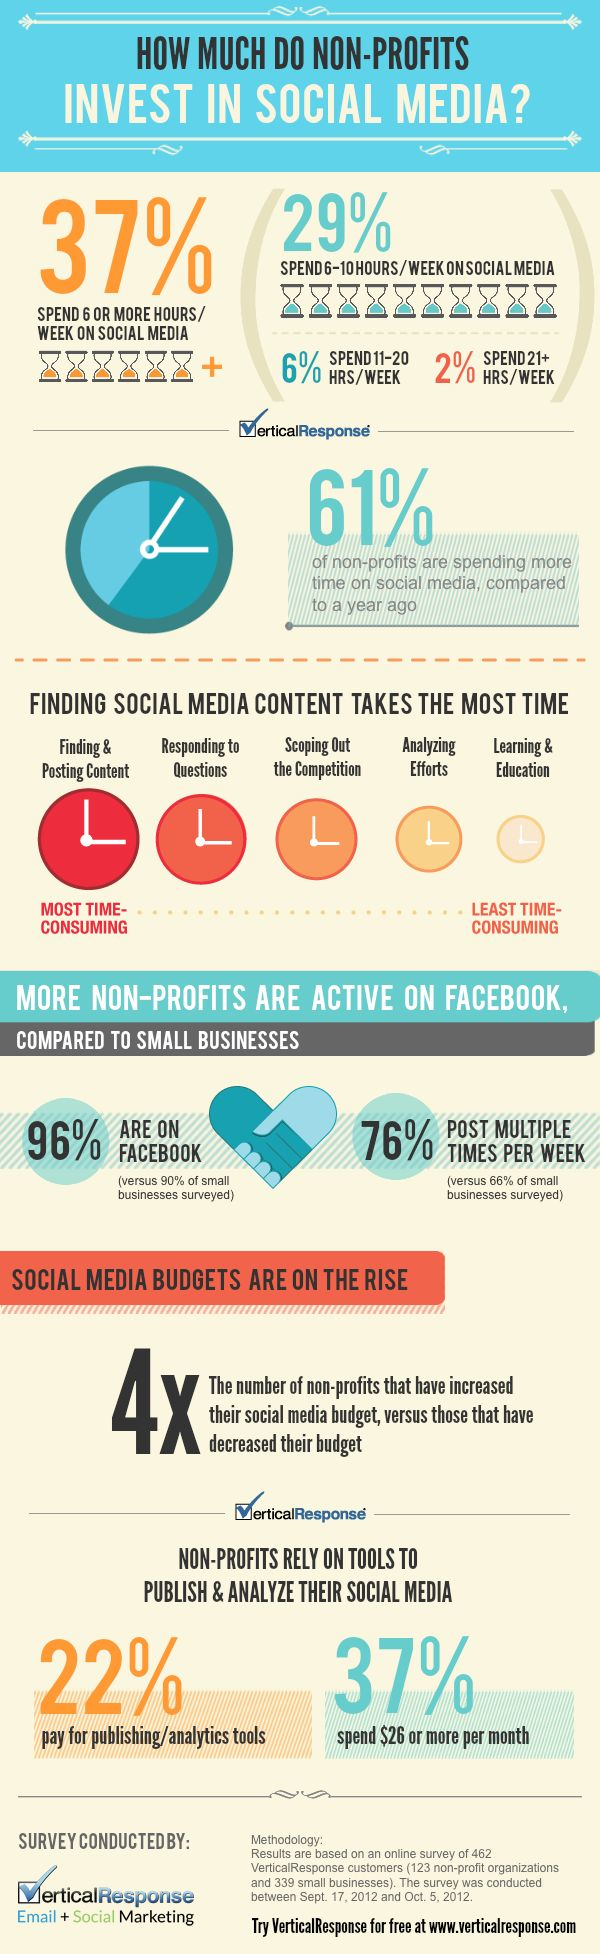 Non-Profits Investing More Time, Money in Social Media [Infographic]